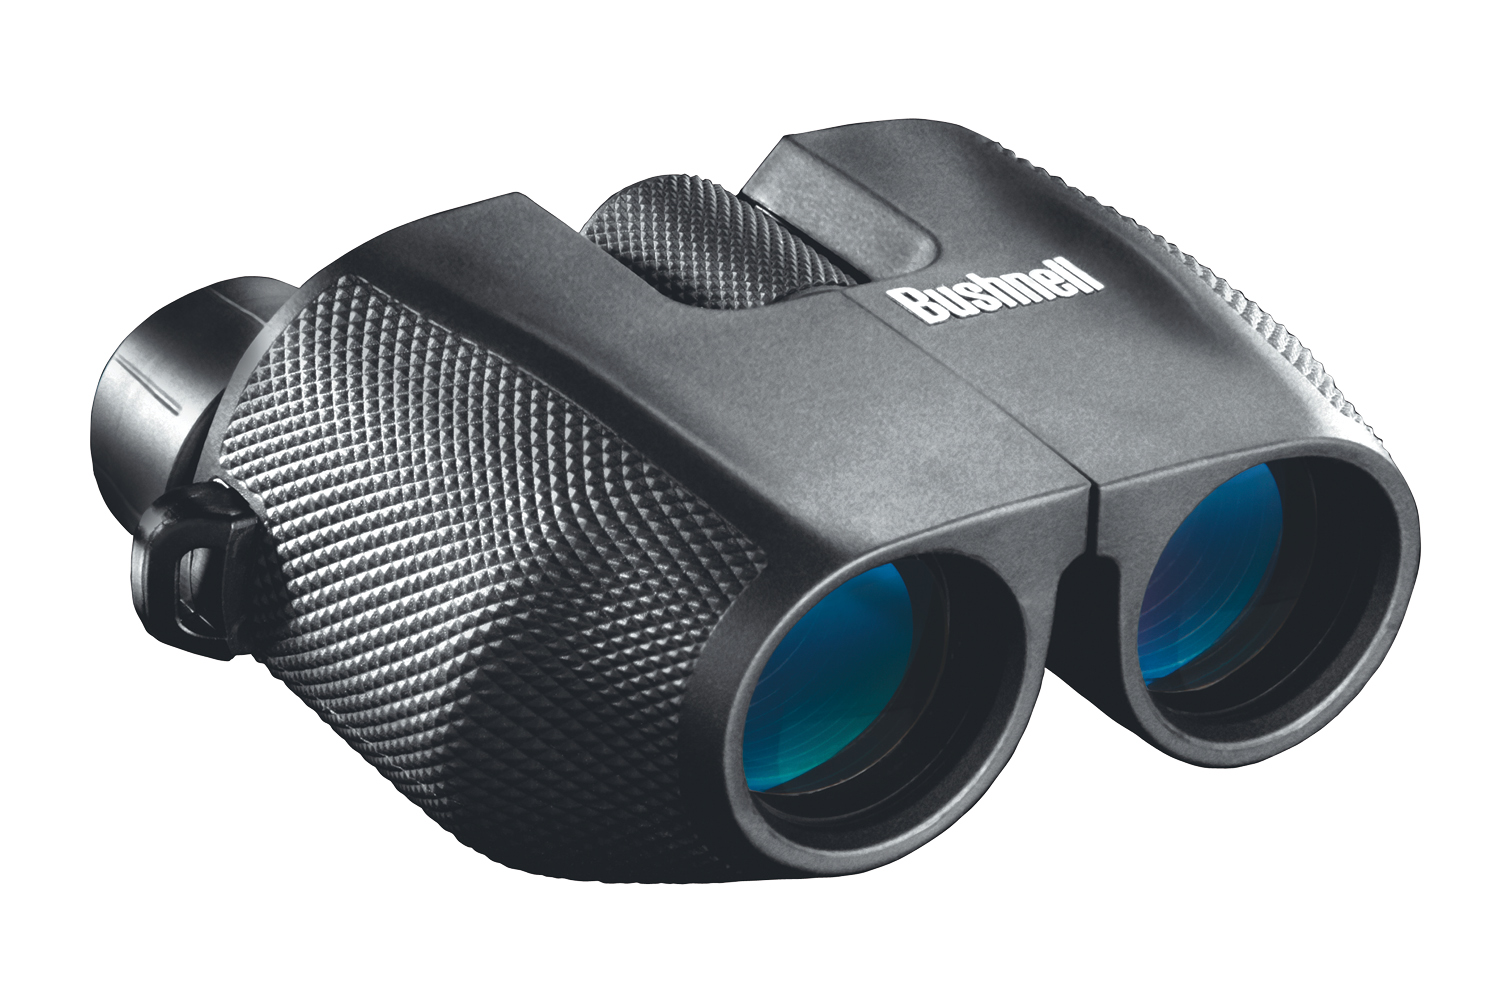 Бинокль Bushnell PowerView PORRO 8x25 бинокль levenhuk левенгук rainbow 8x25 black tie